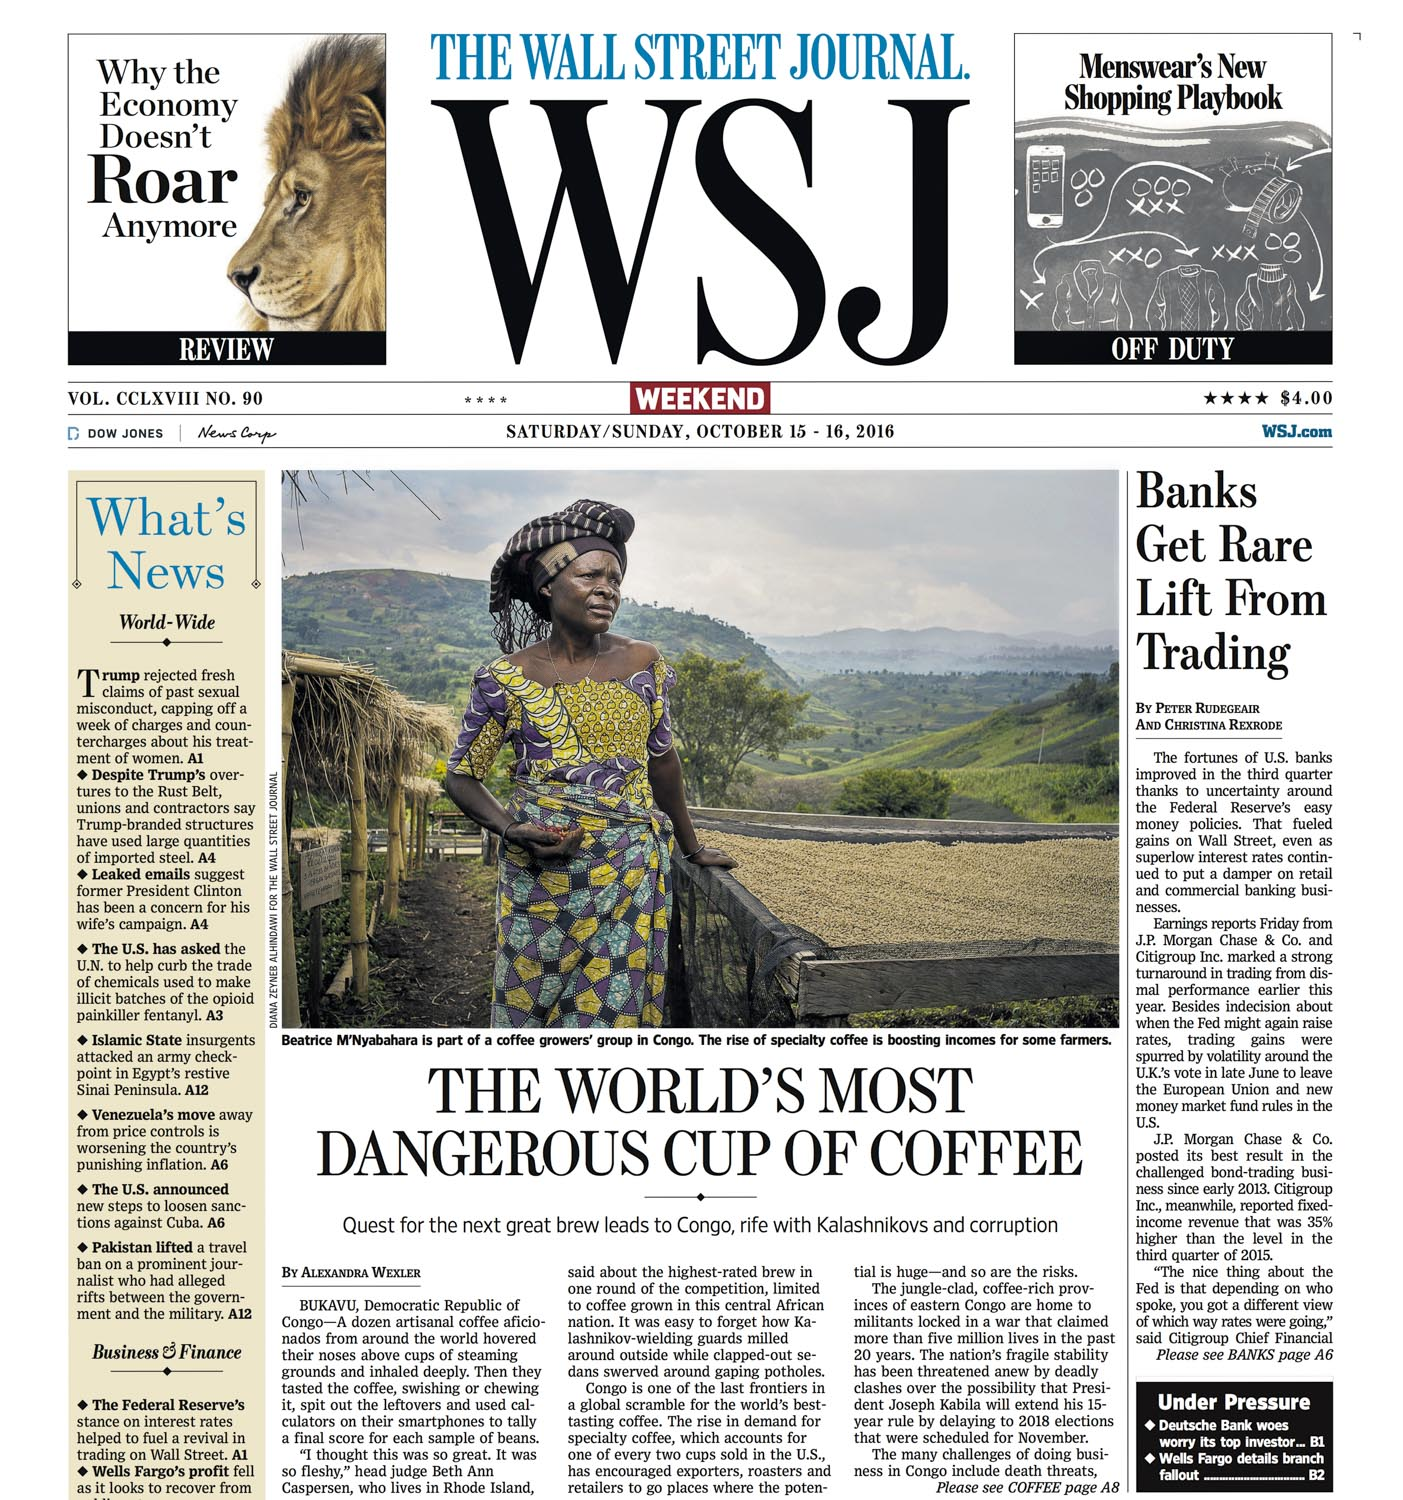 The most dangerous cup of coffee in the world | The Wall Street Journal, front page A1 and A8, Oct 15, 2016